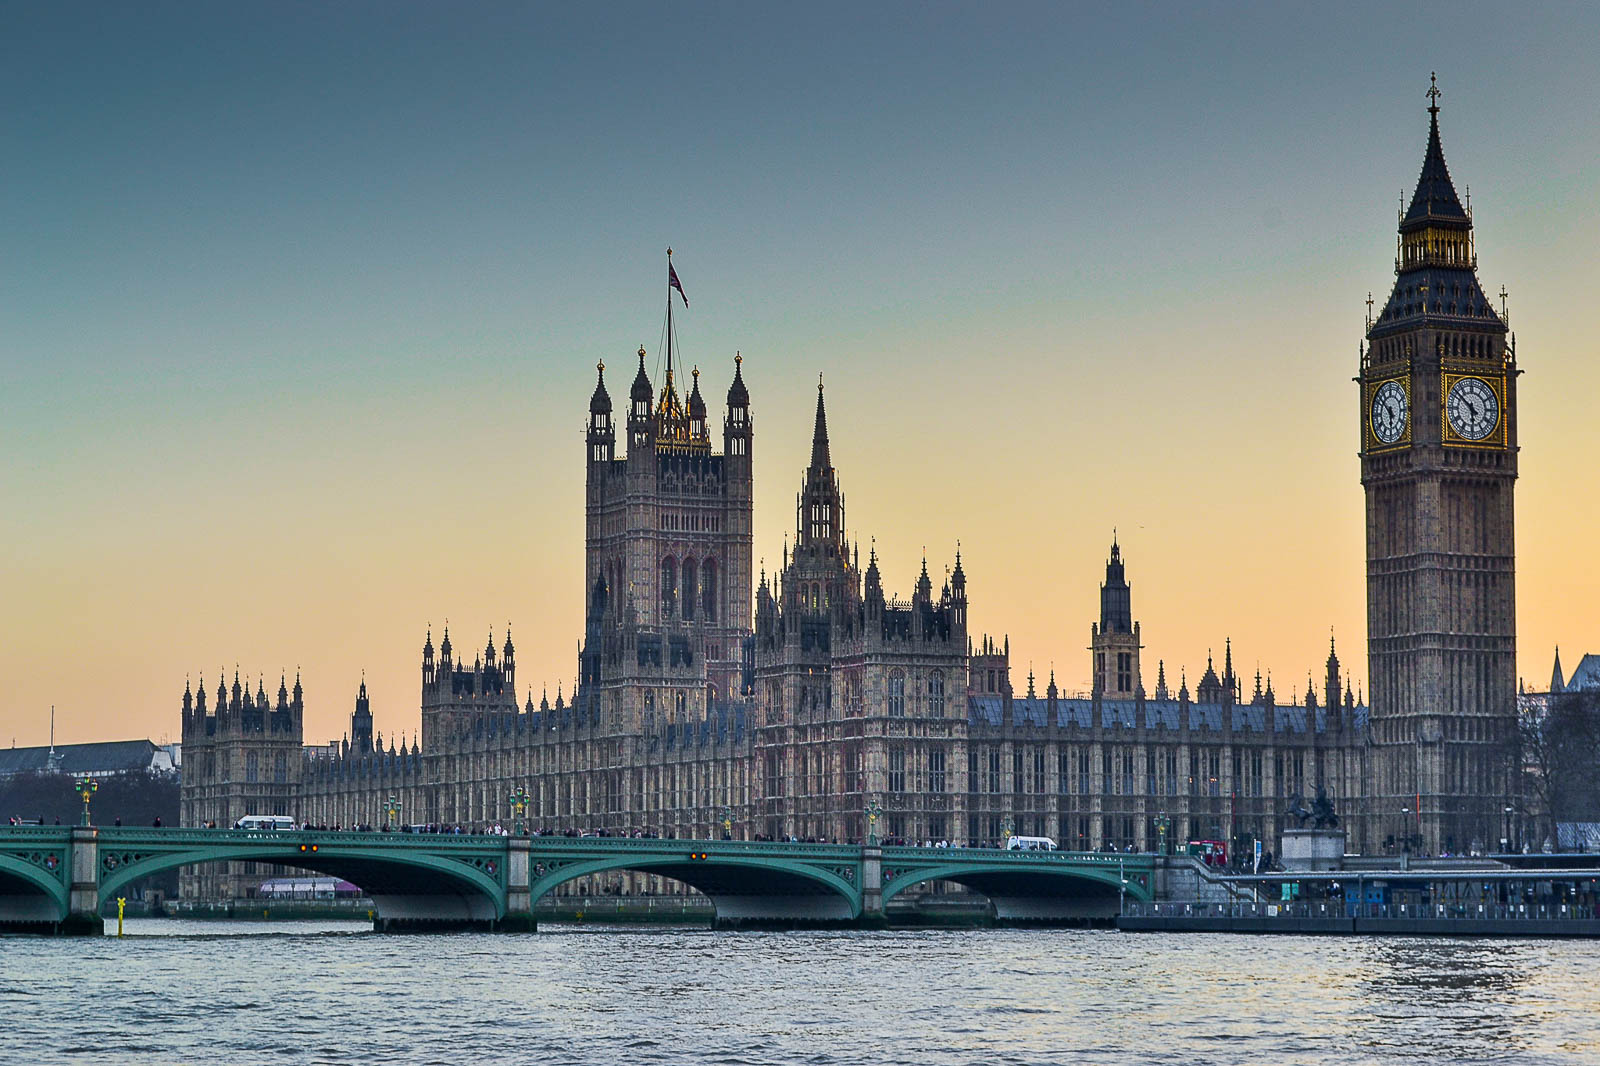 Houses_of_parlament_London